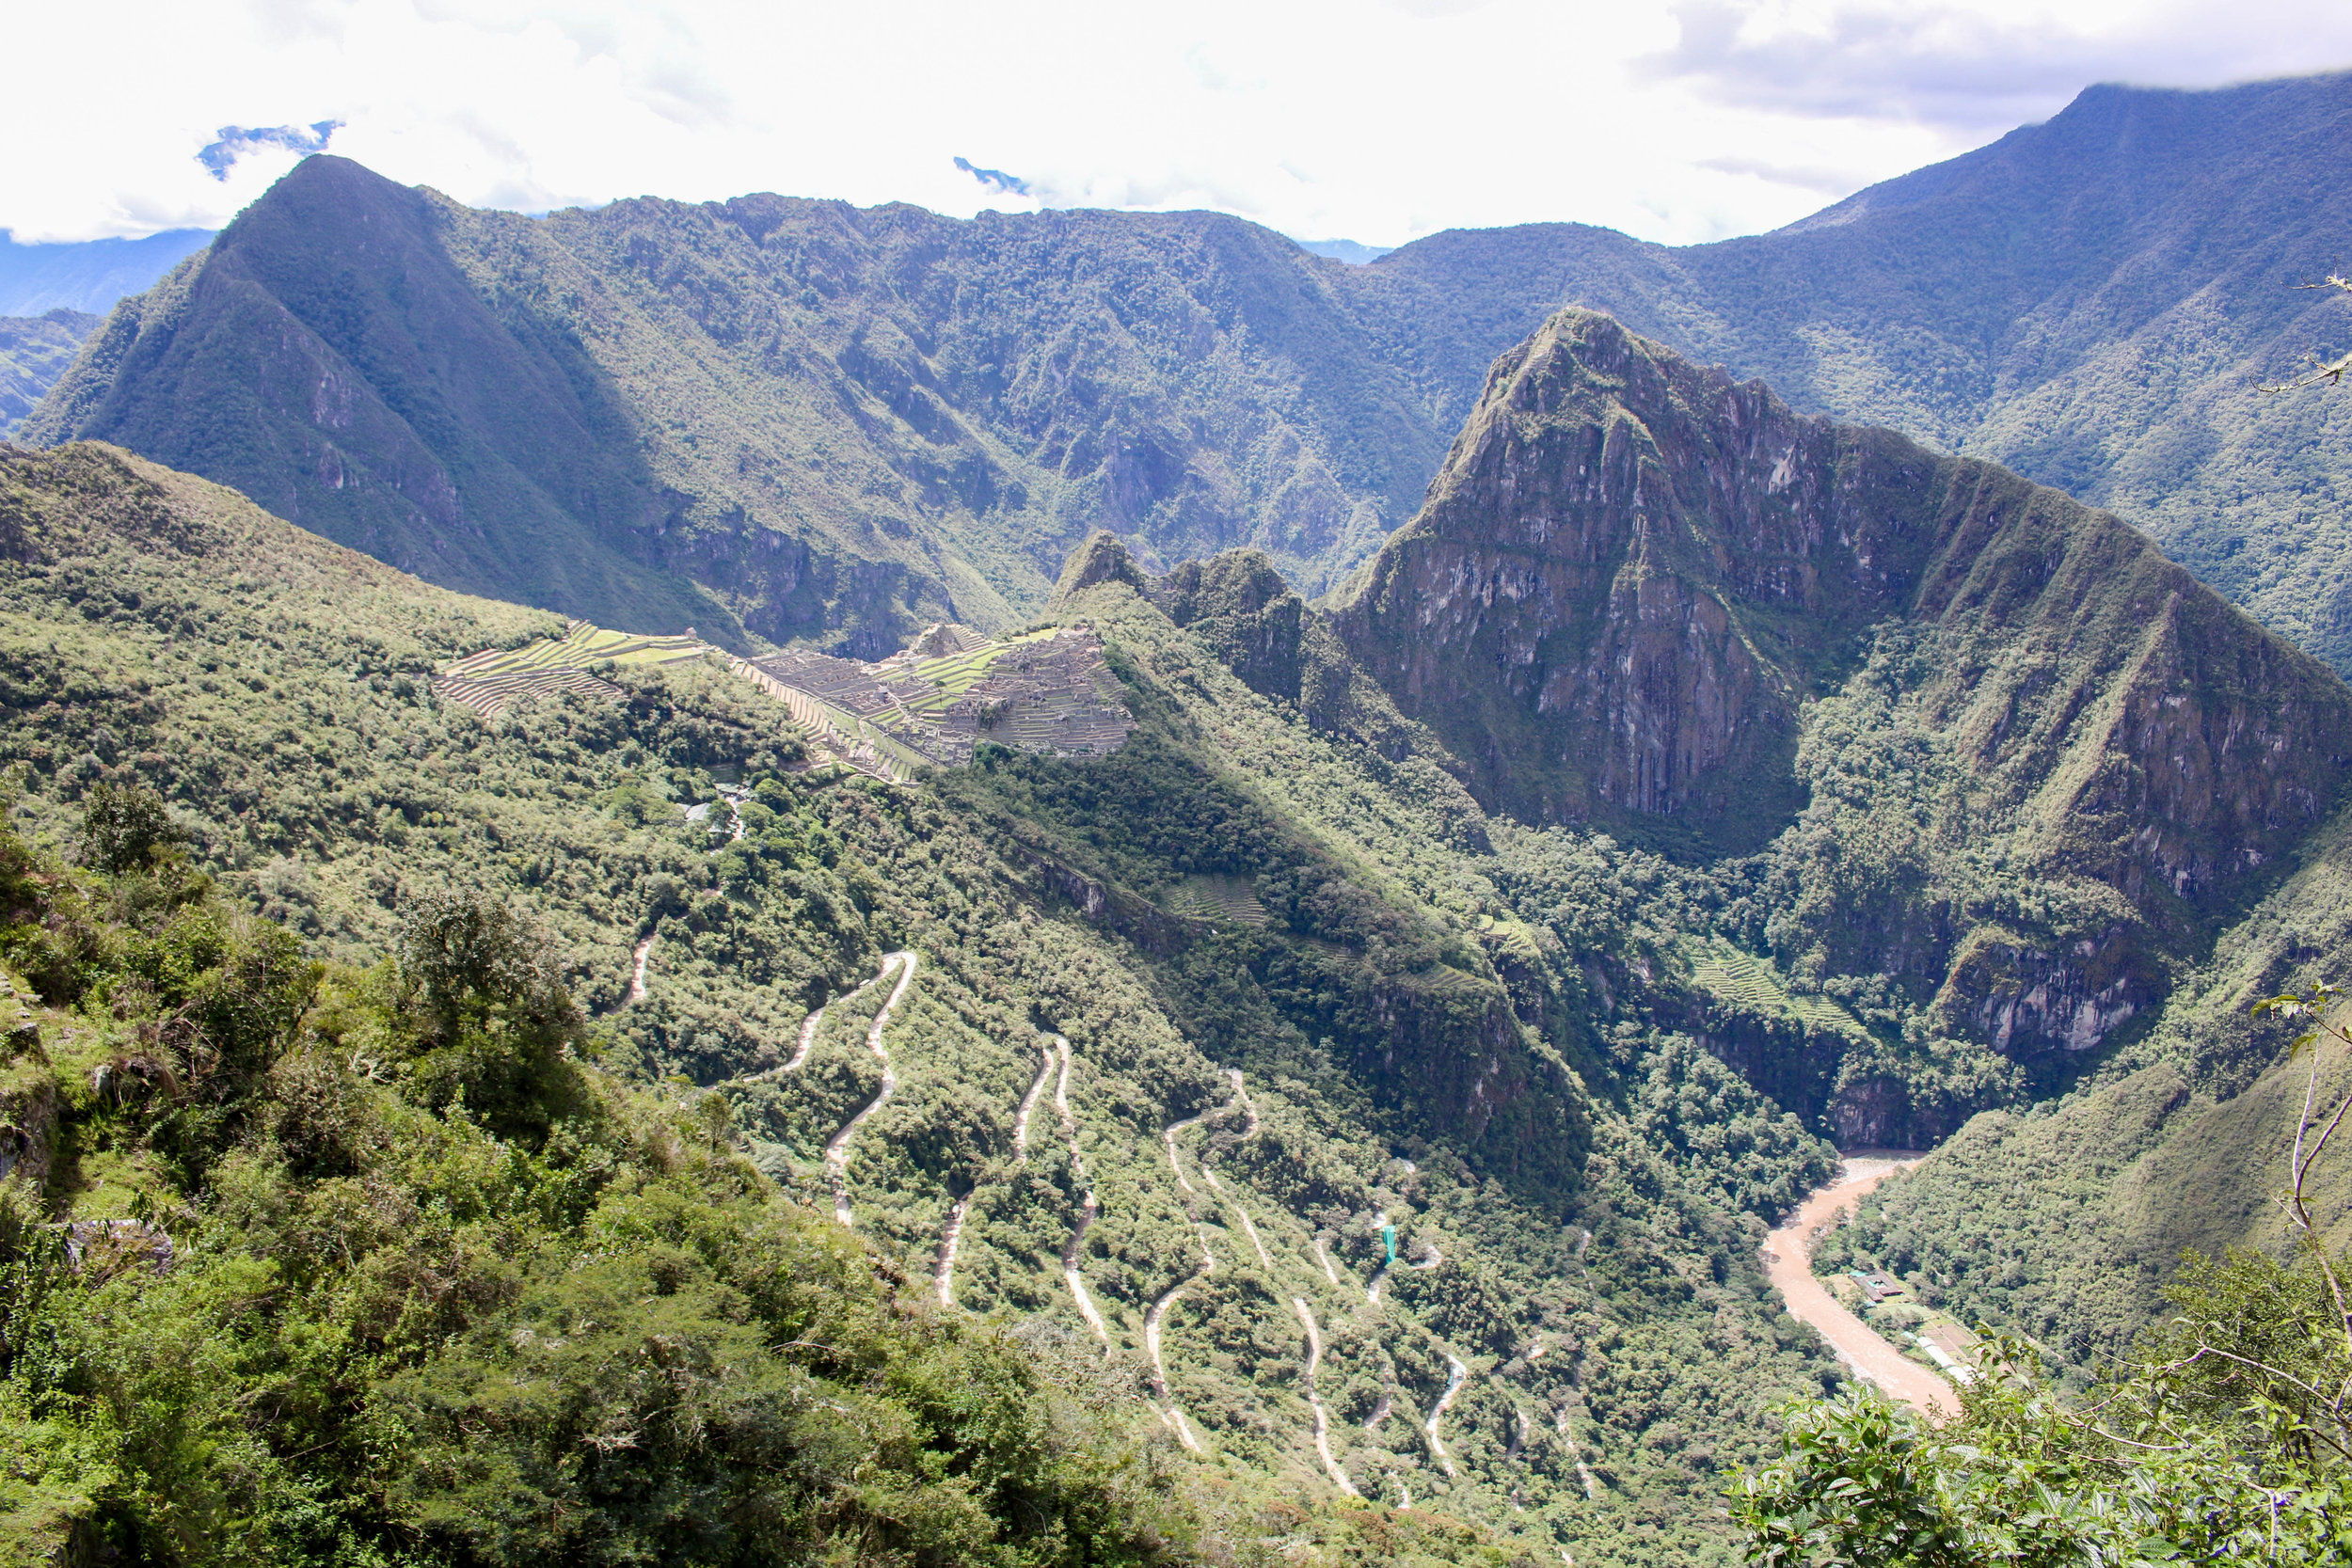 The Road to Machu Picchu from the Sun Gate, Peru